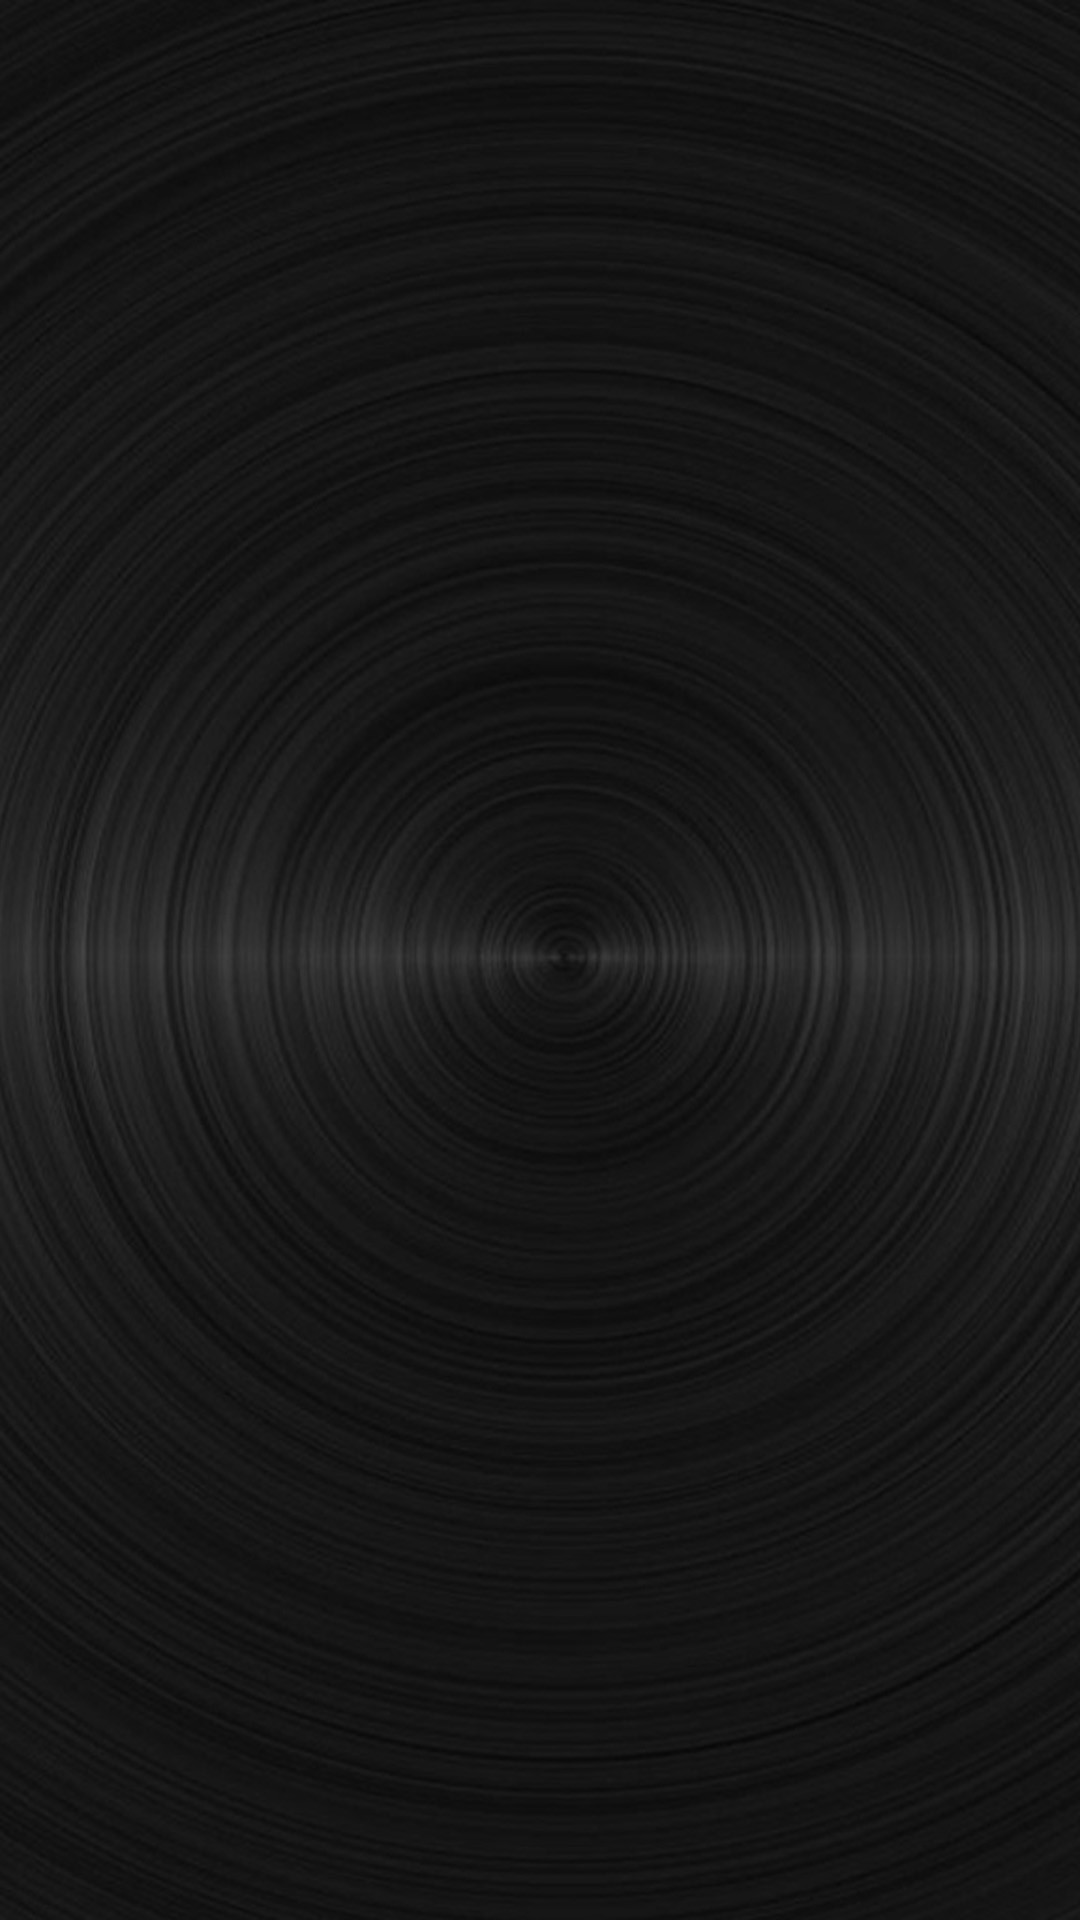 Black Wallpaper Background : Pure Black Wallpaper (66+ images)